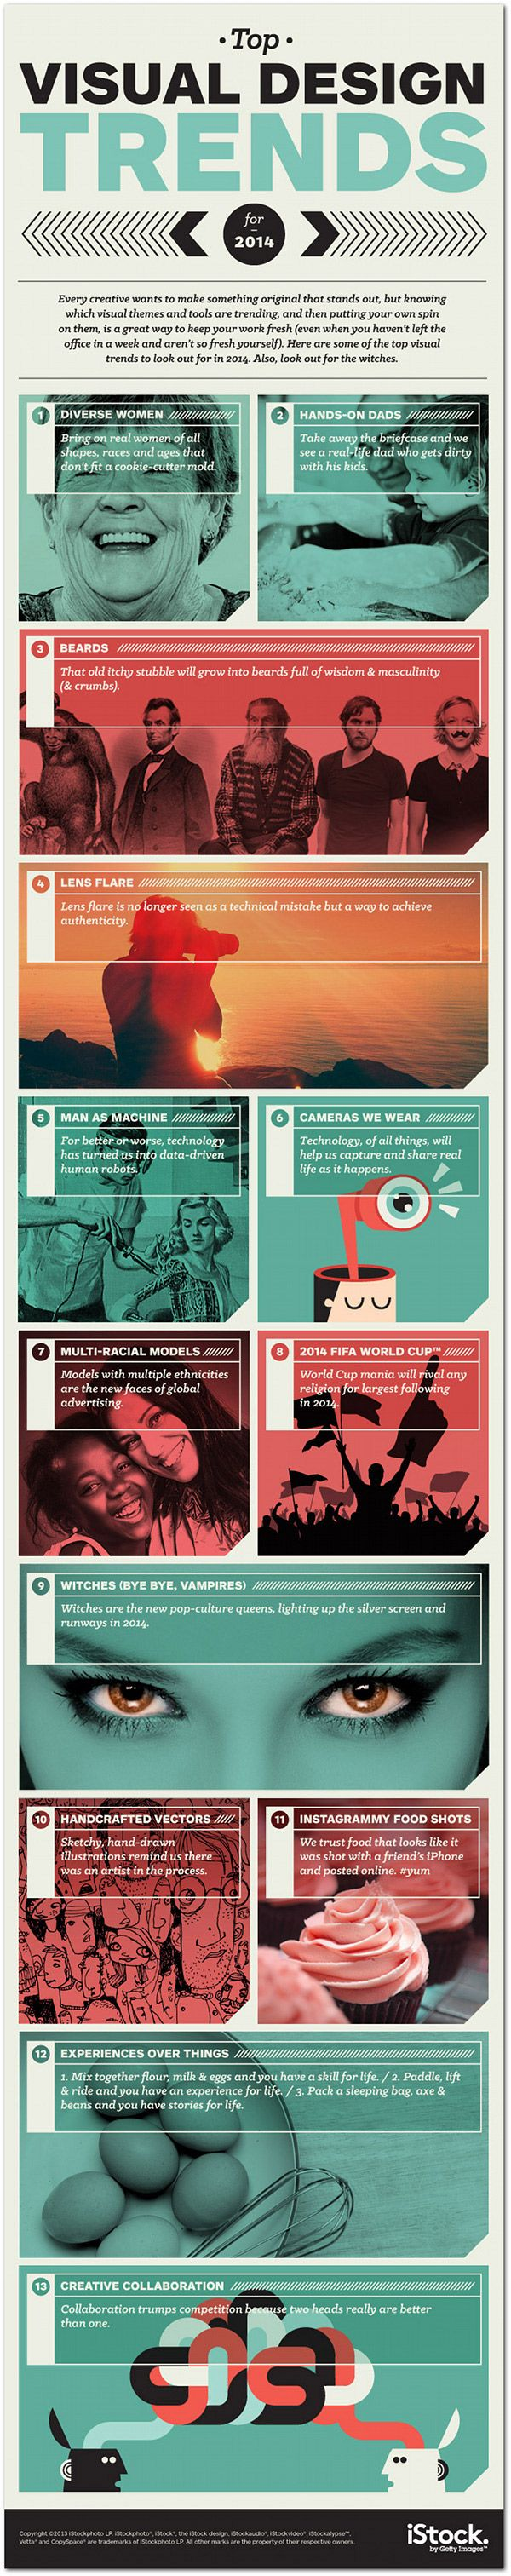 best the art of information images on pinterest info graphics